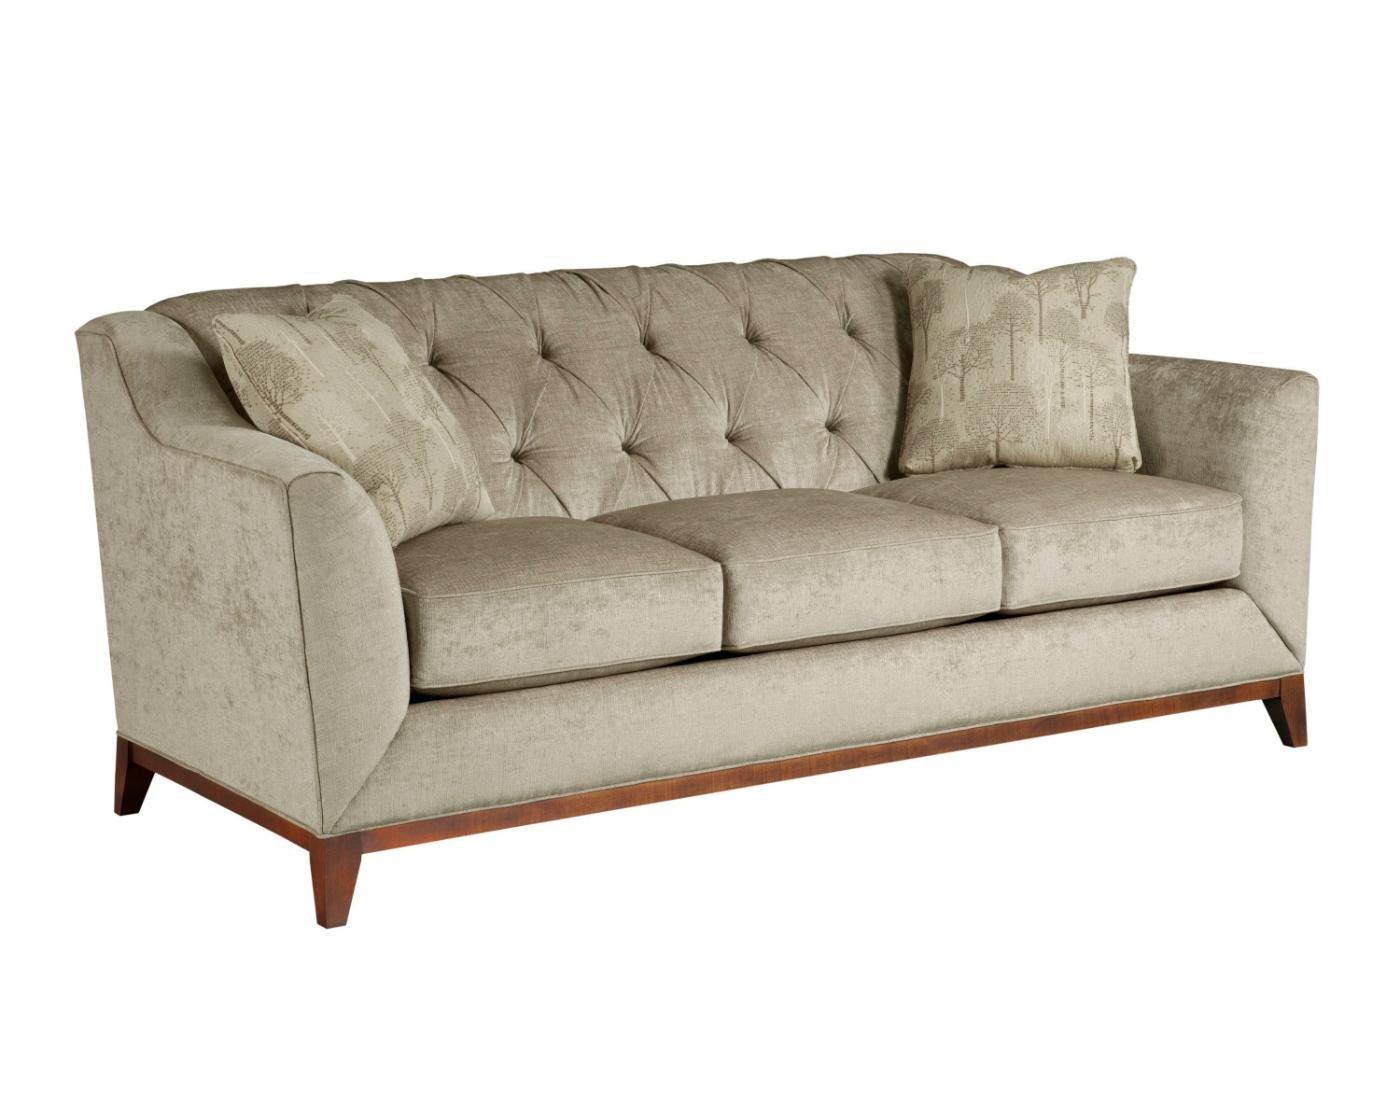 Featured Image of Broyhill Perspectives Sofas